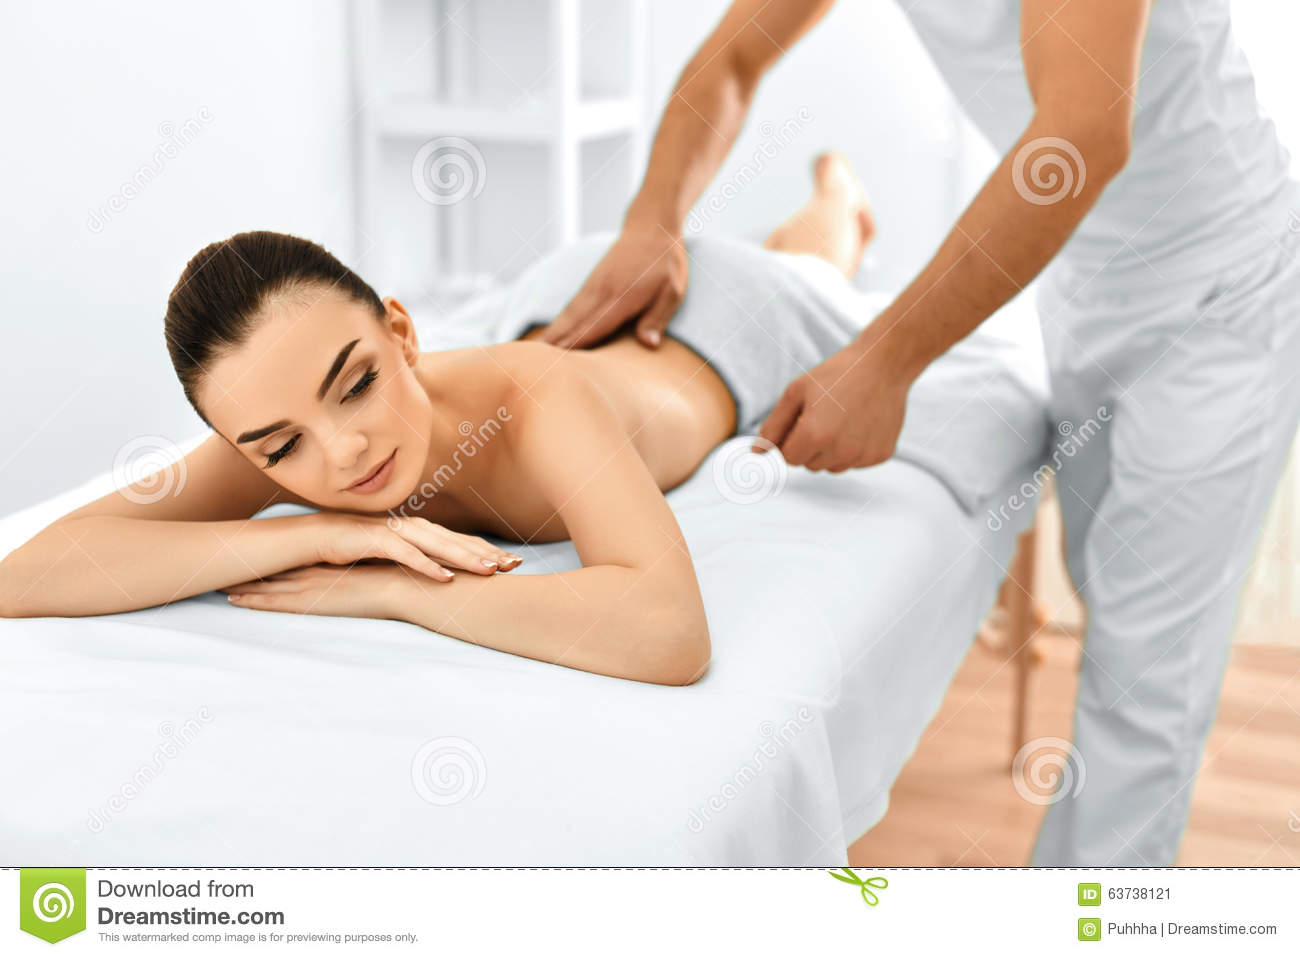 Nice male body gets a massage